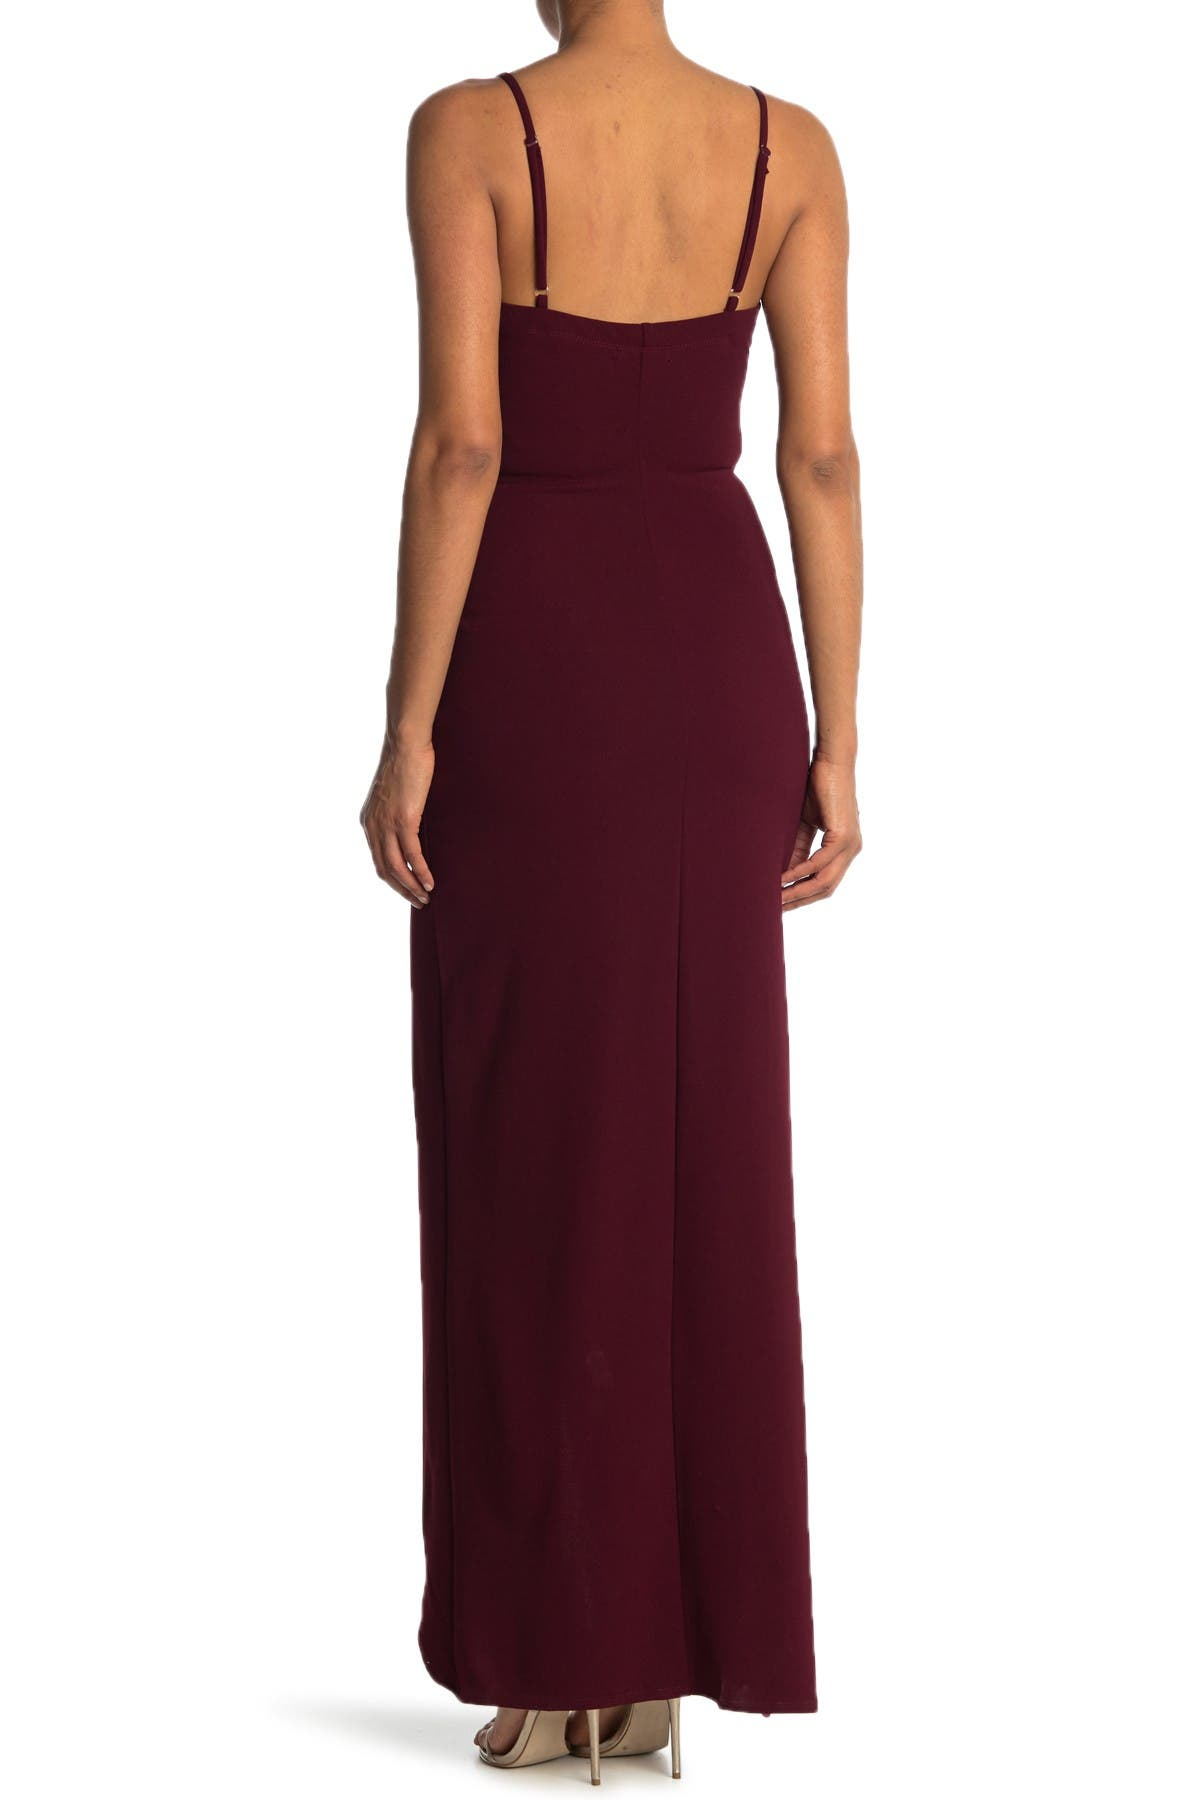 Image of Love, Nickie Lew Cowl Neck Spaghetti Strap Slit Maxi Dress